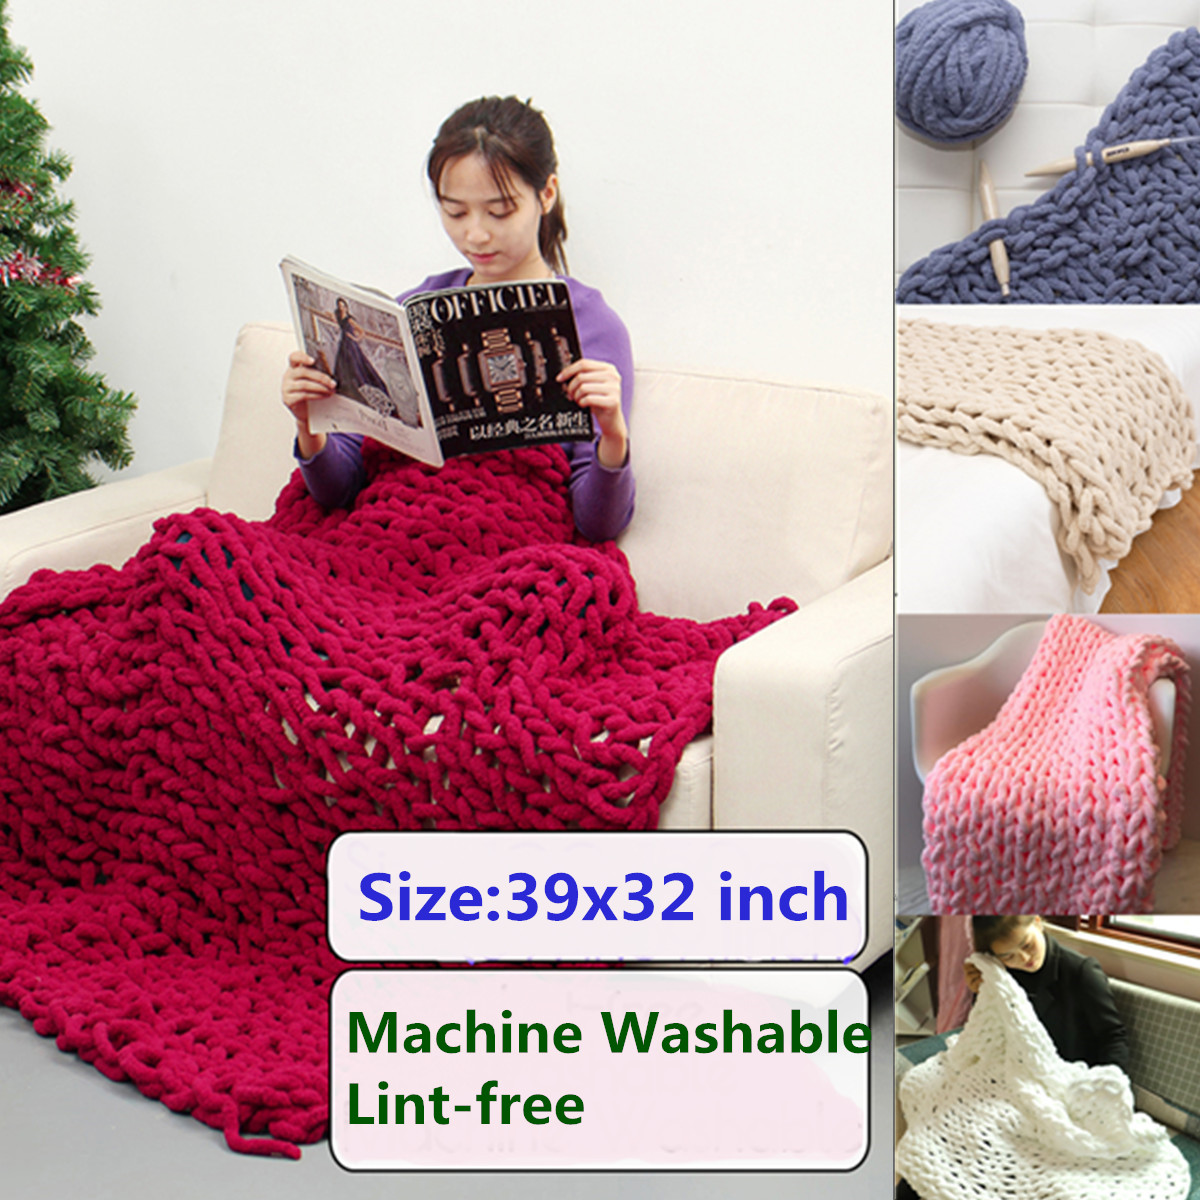 39''x32'' Warm Soft Chunky Hand-woven Knit Blanket Bulky Thick Yarn Knitted Bed Sofa Throw Rug - Washable & Lint-free